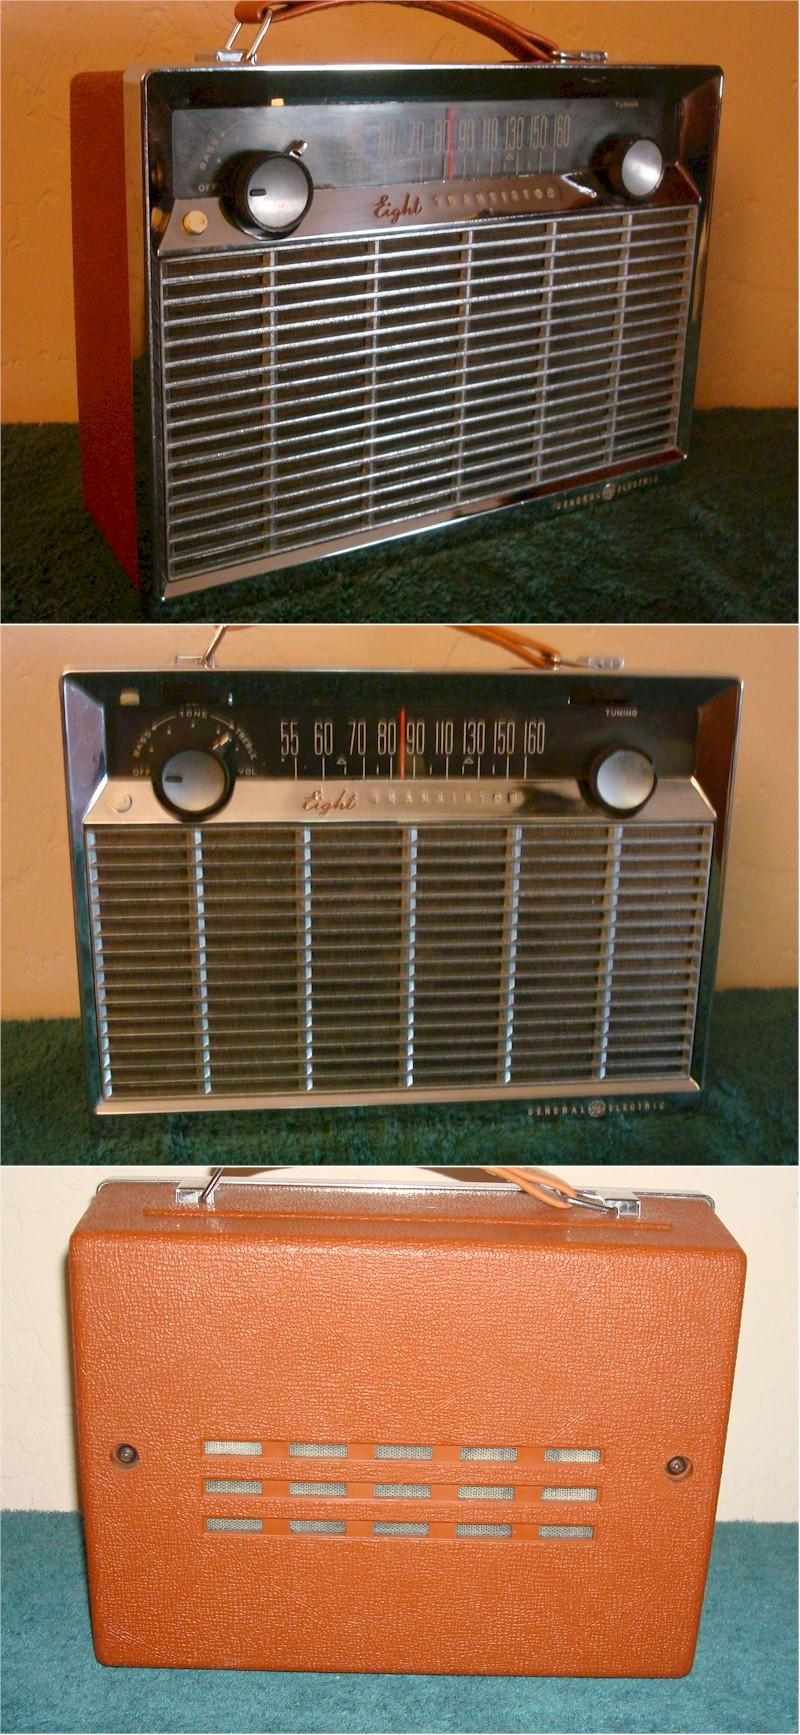 General Electric P780 Portable (1960)